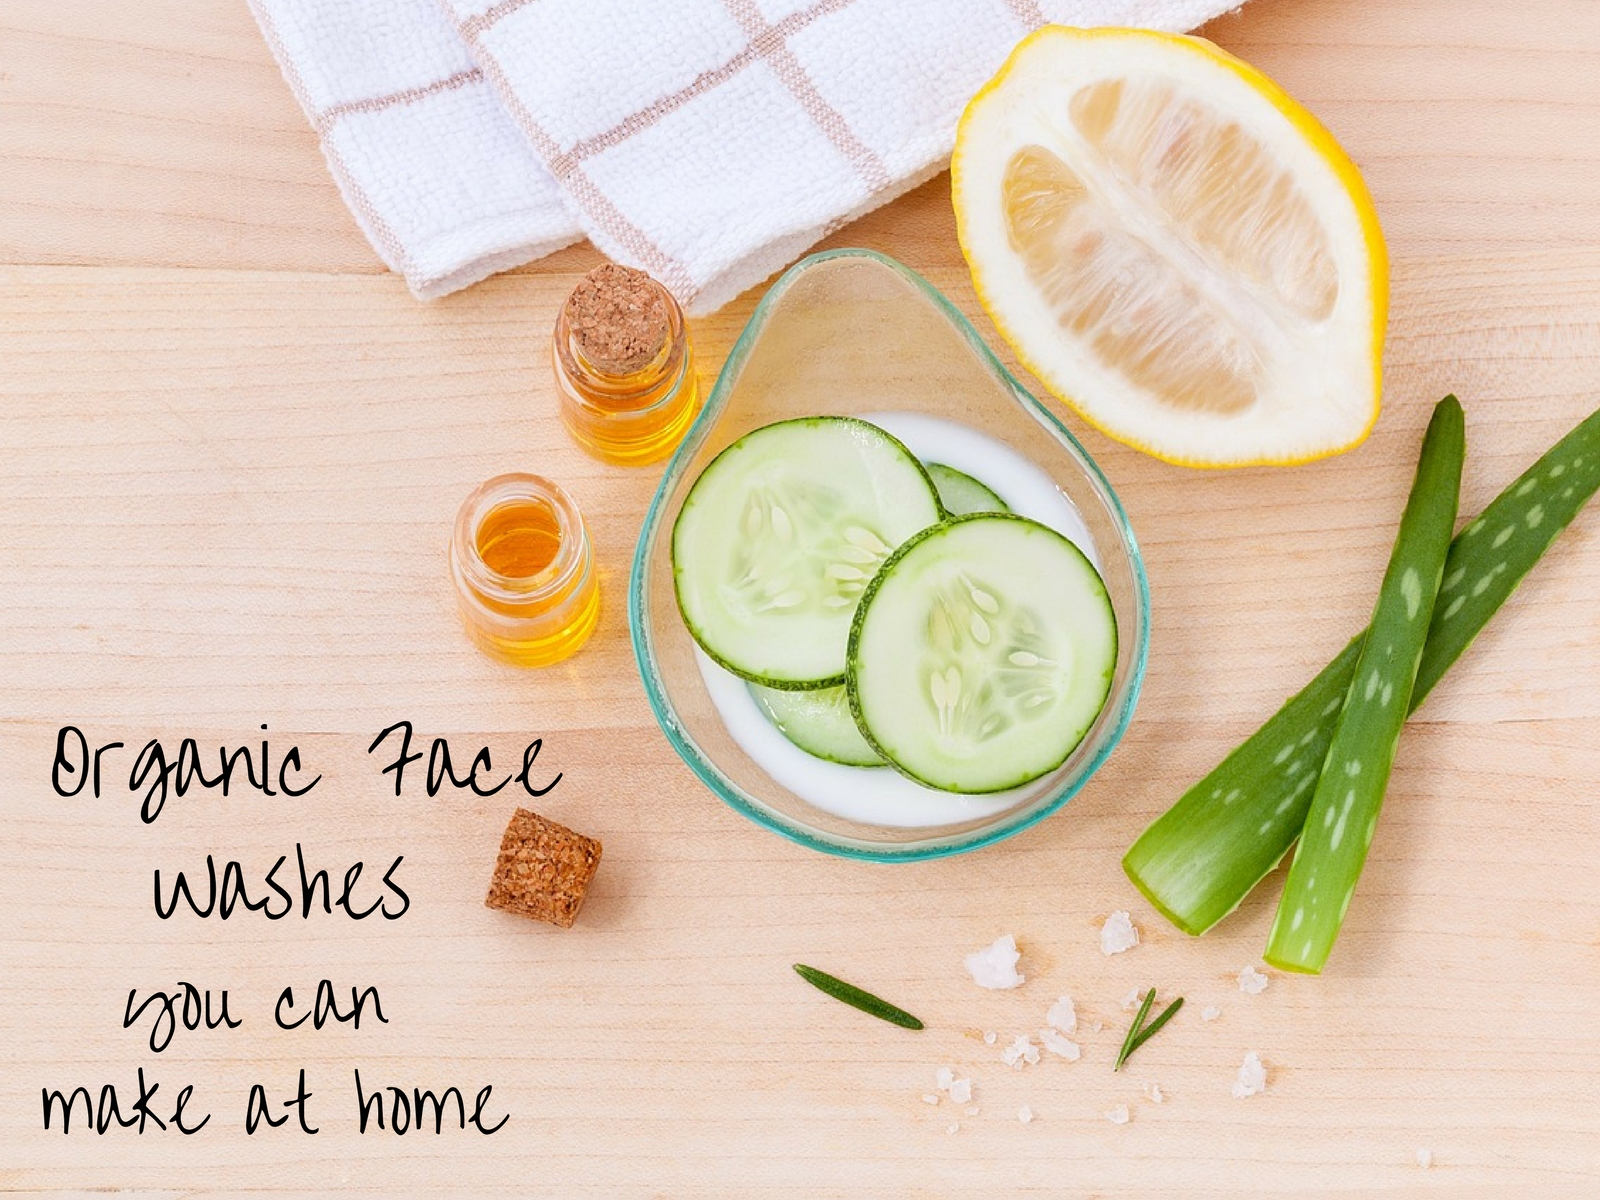 Organic face washes you can make at home for Products you can make at home